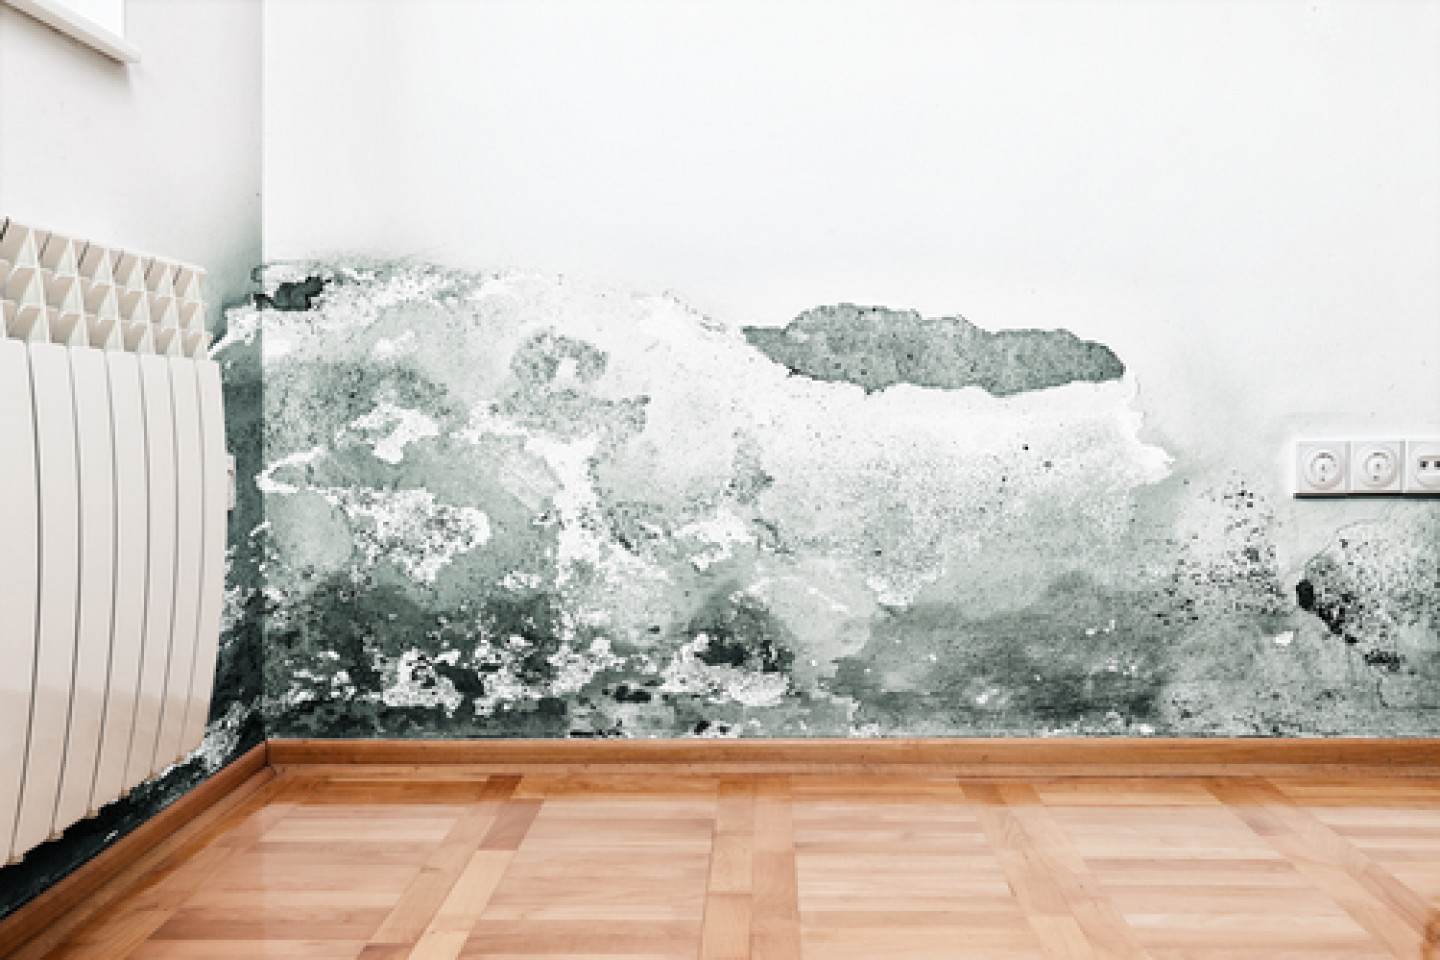 Is Mold Threatening Your Home?